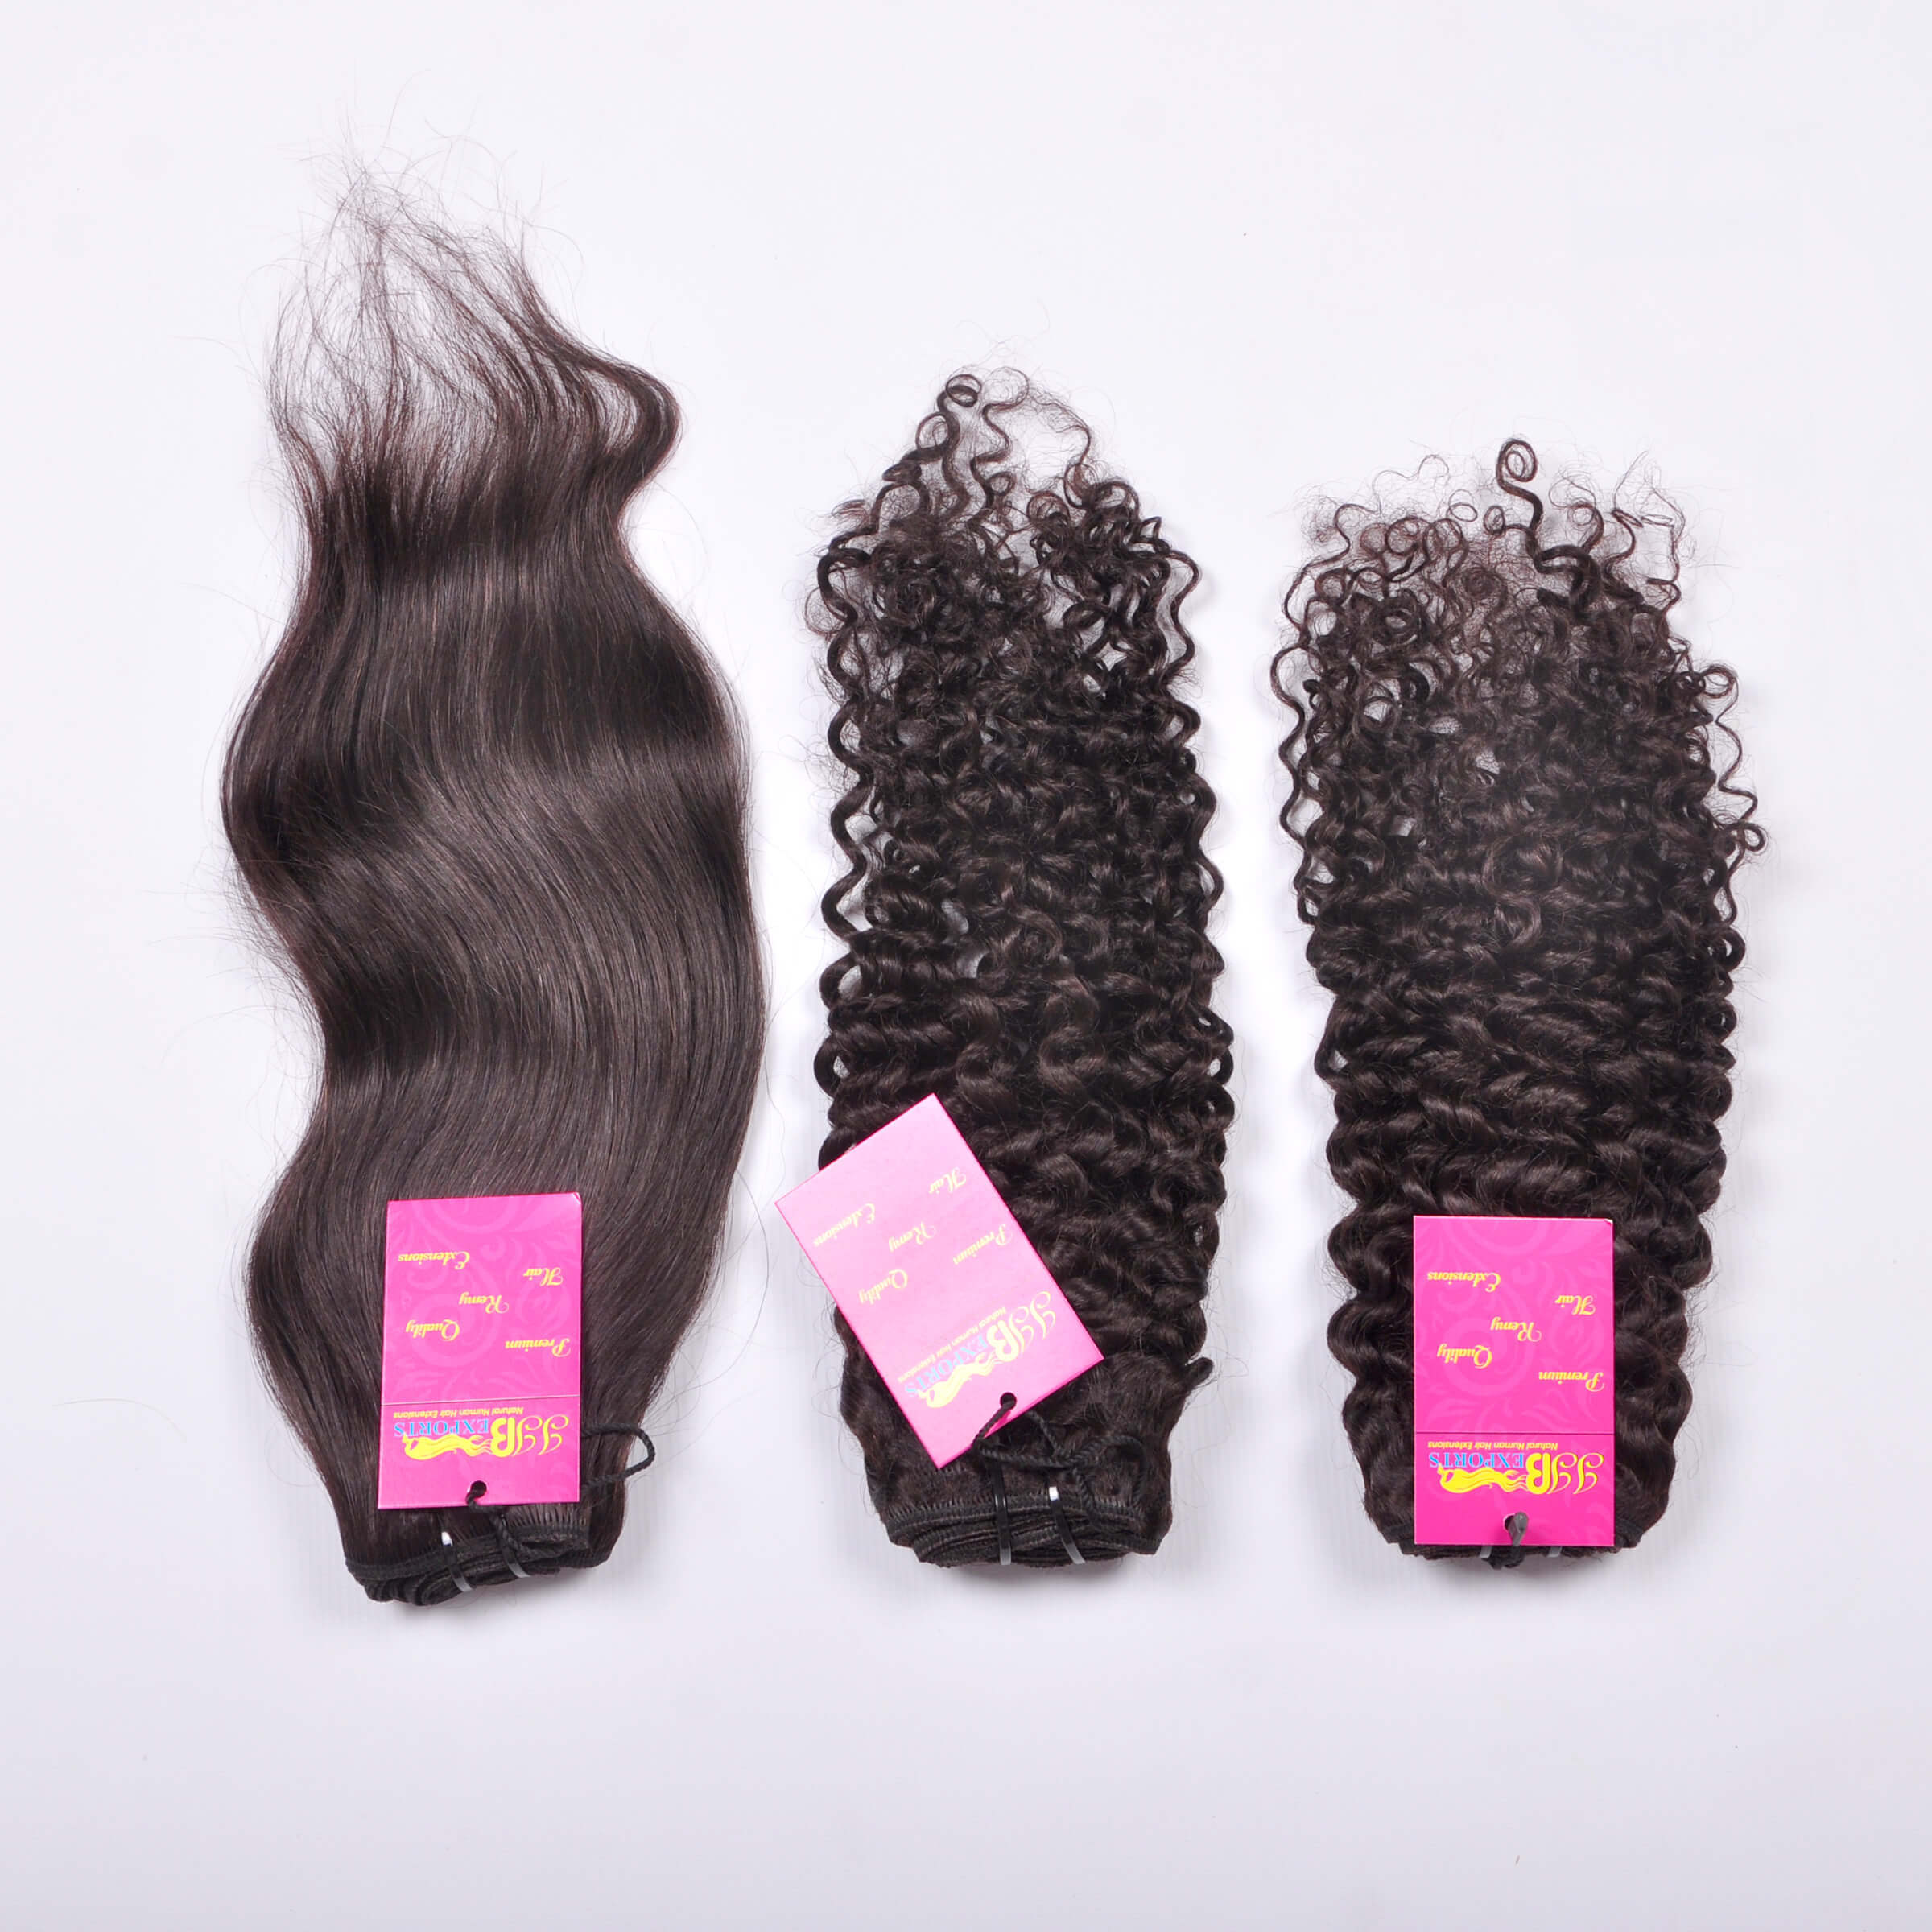 Straight Virgin Indian Soft & Silky Wavy/curly Remy Wefted Human Hair Bundle With Closure Frontal Hair